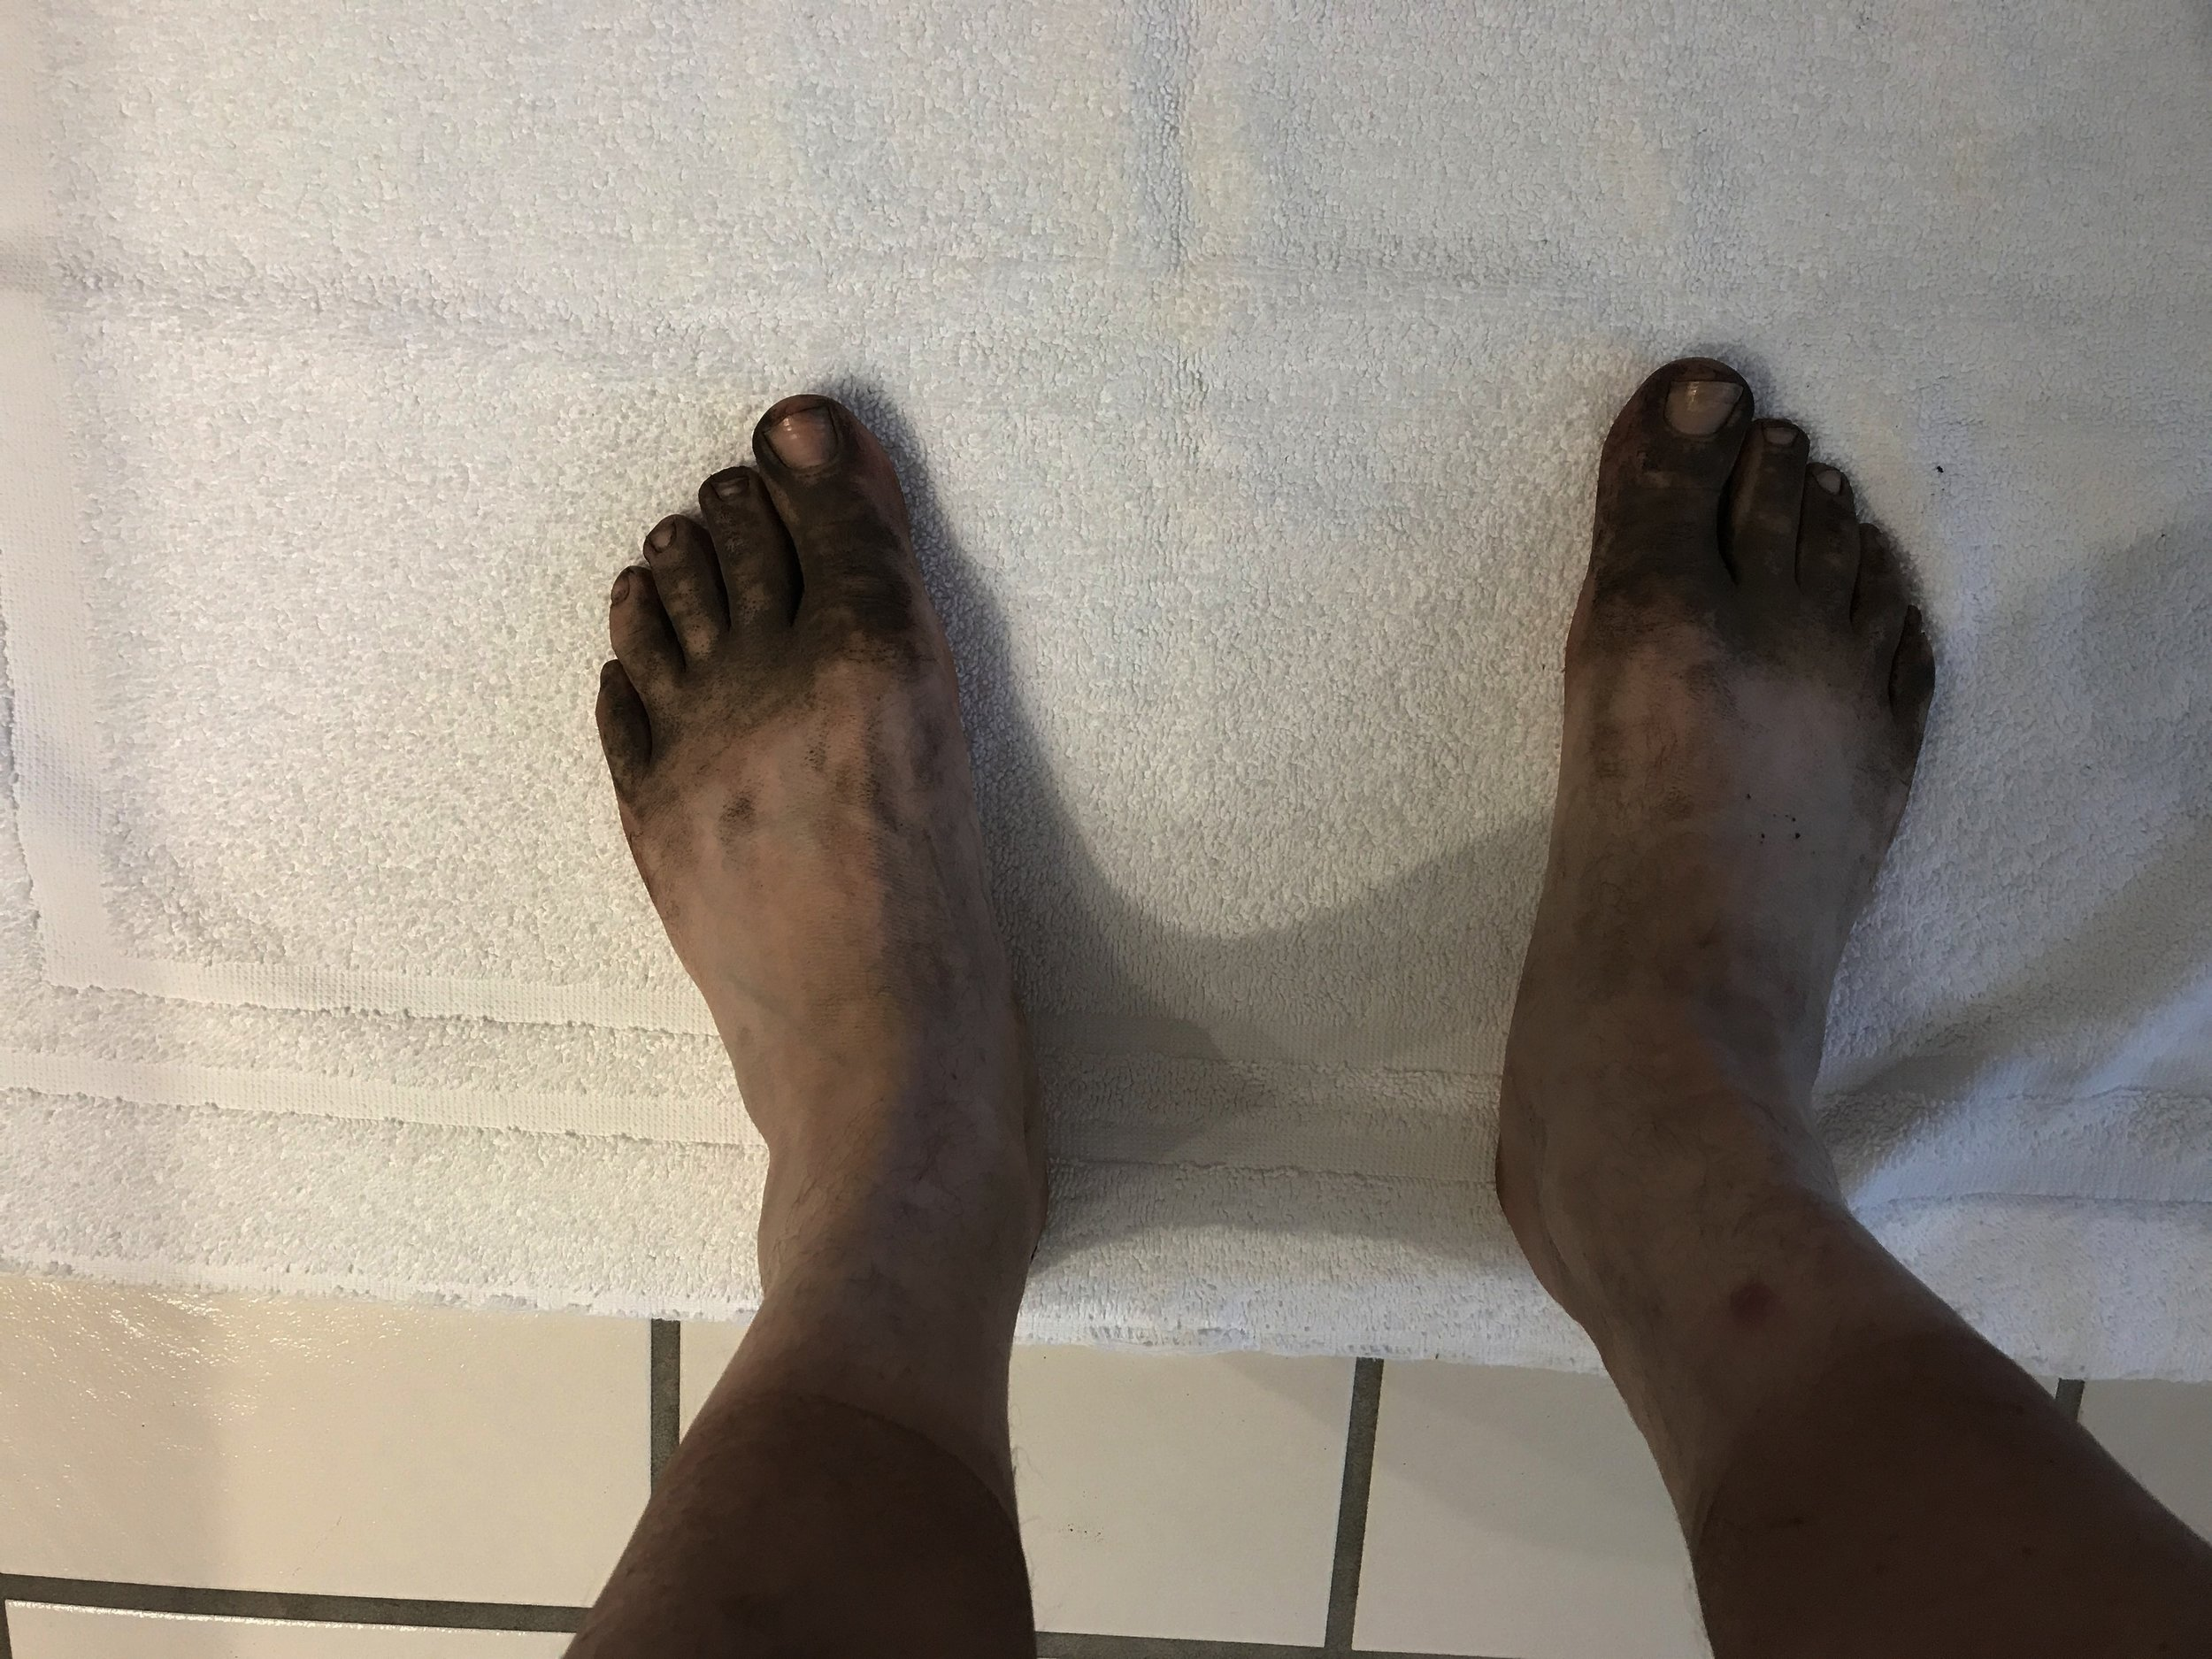 Taken prior to my first shower since getting off the trial. My feet were feeling pretty beat up.